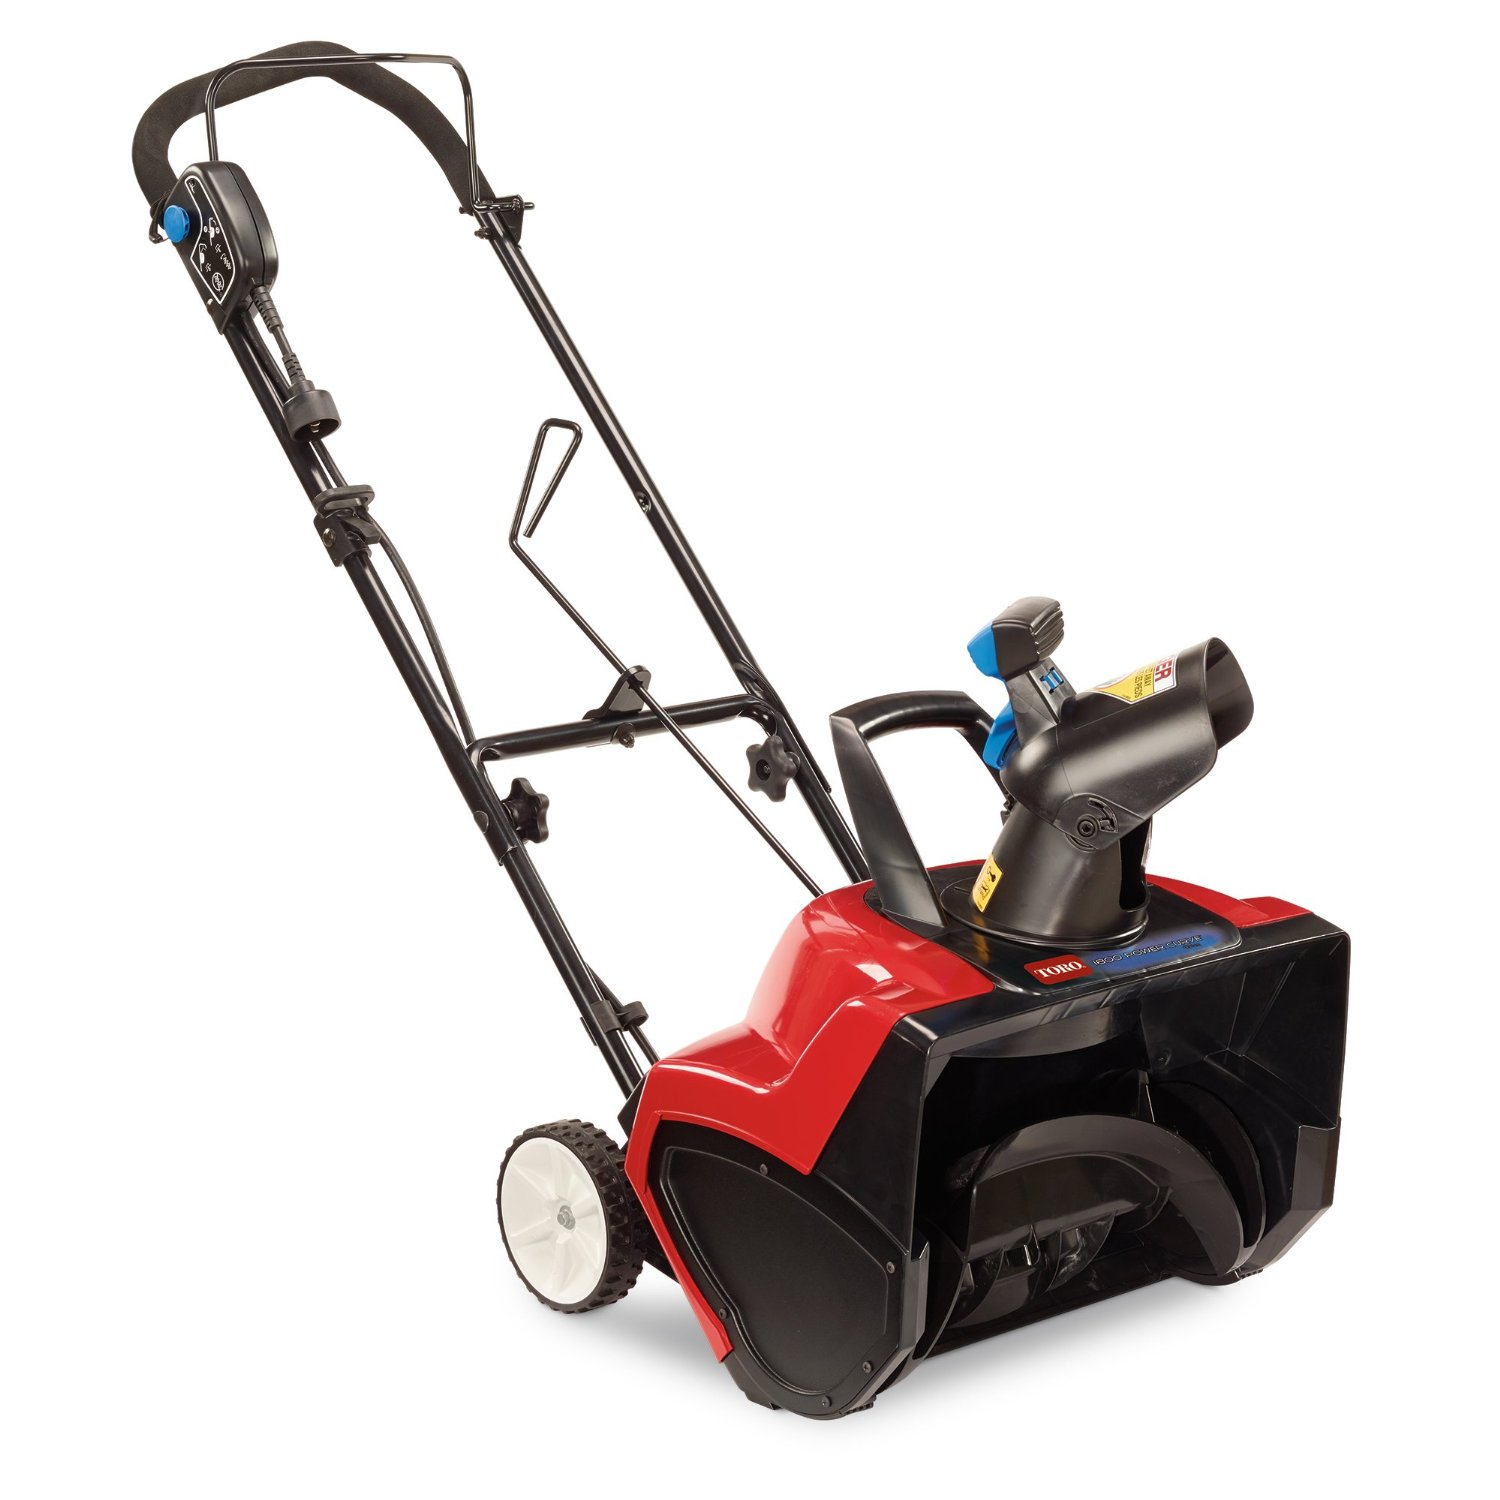 Best Snow Blowers For Sale Review for Jerusalem Post